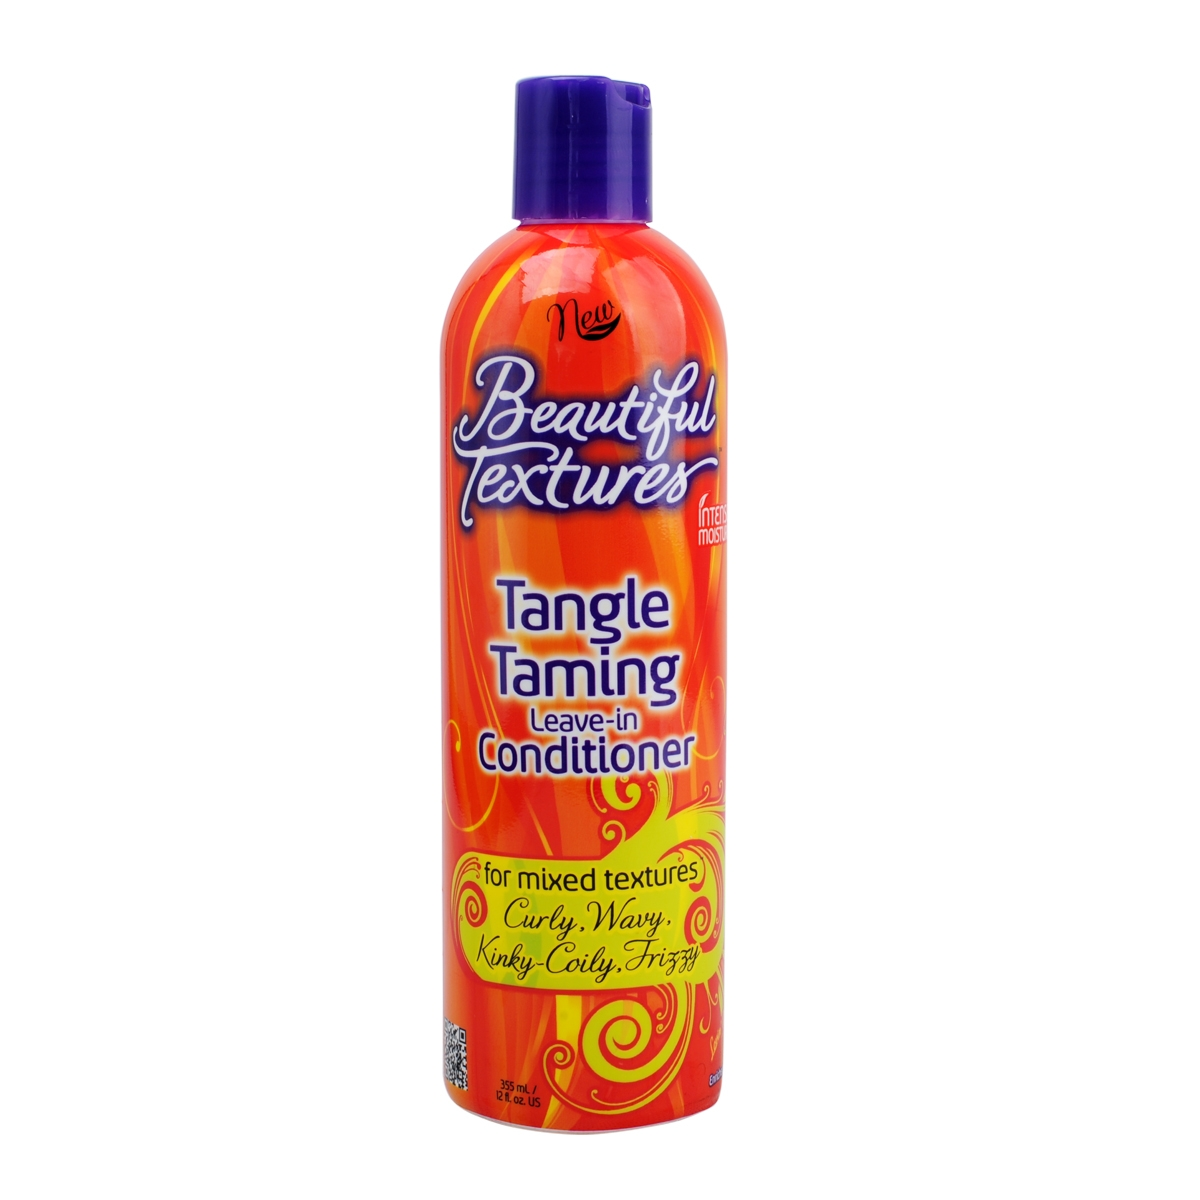 Beautiful Textures Tangle Taming Leave In Conditioner Olori